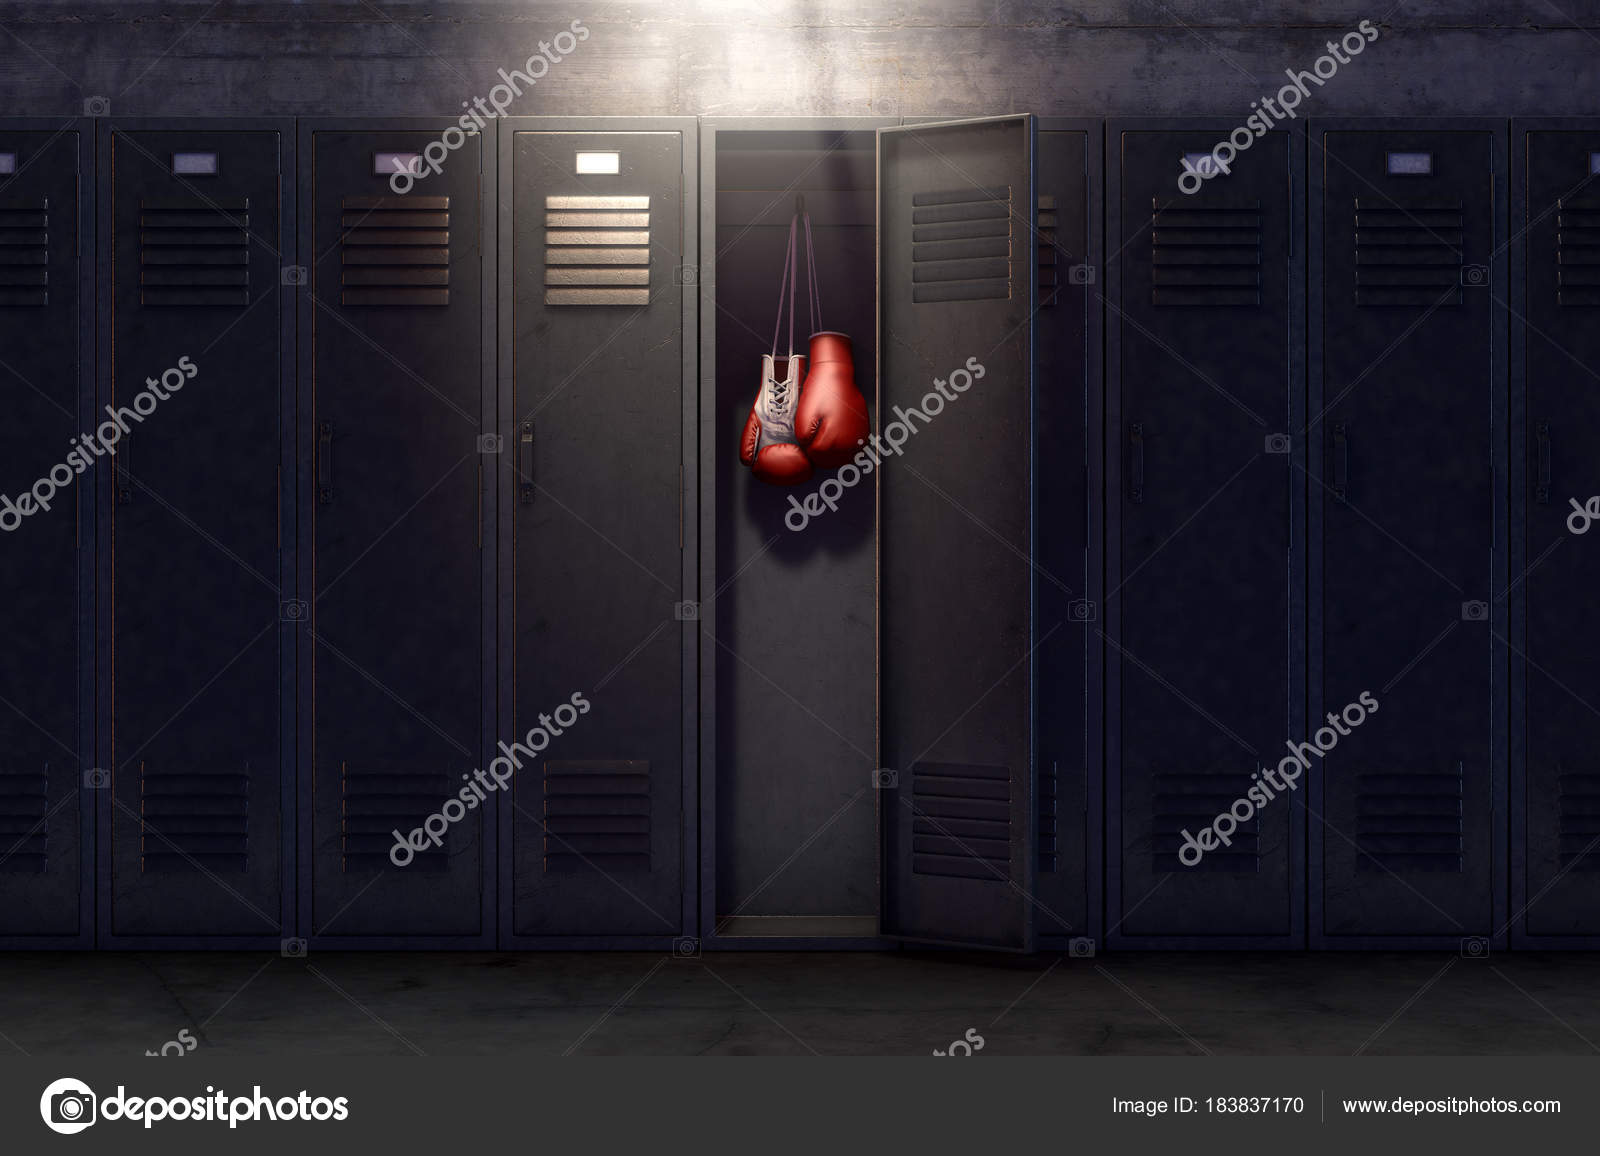 A Row Of Metal Gym Lockers With One Open Door Revealing That It Has Pair Boxing Gloves Hanging Up Inside